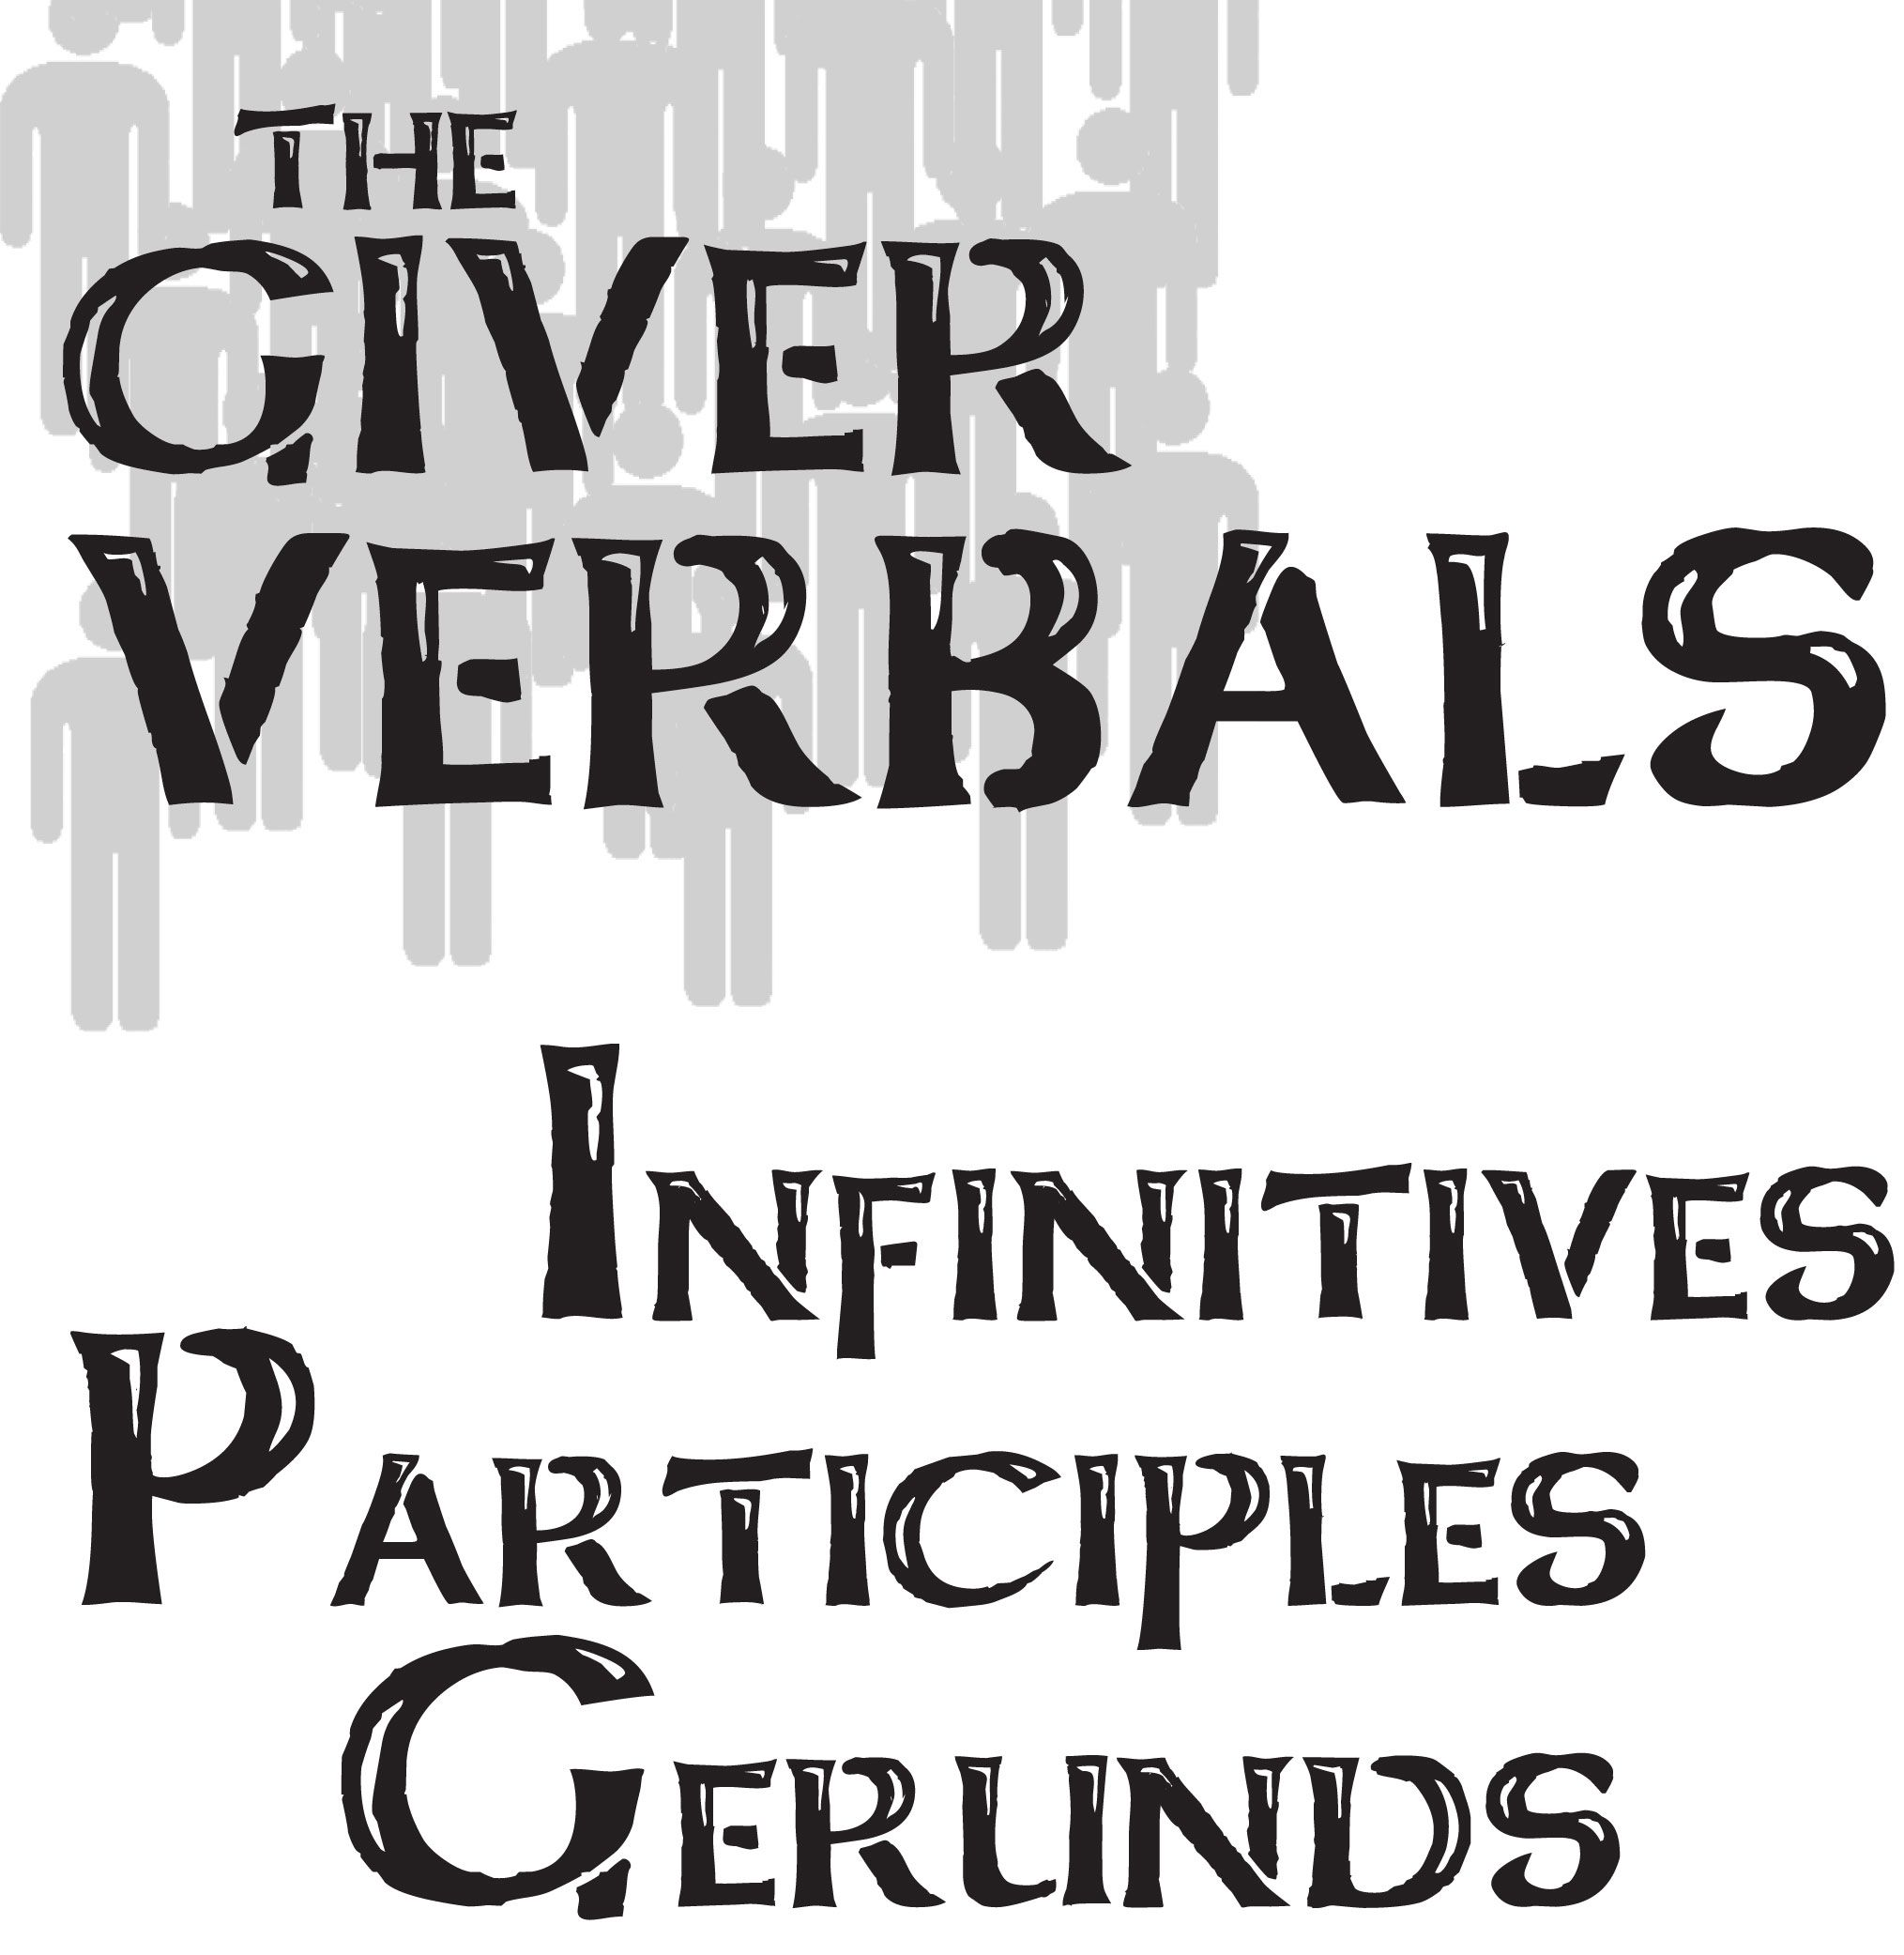 The Giver Verbals Infinitives Participles Gerunds